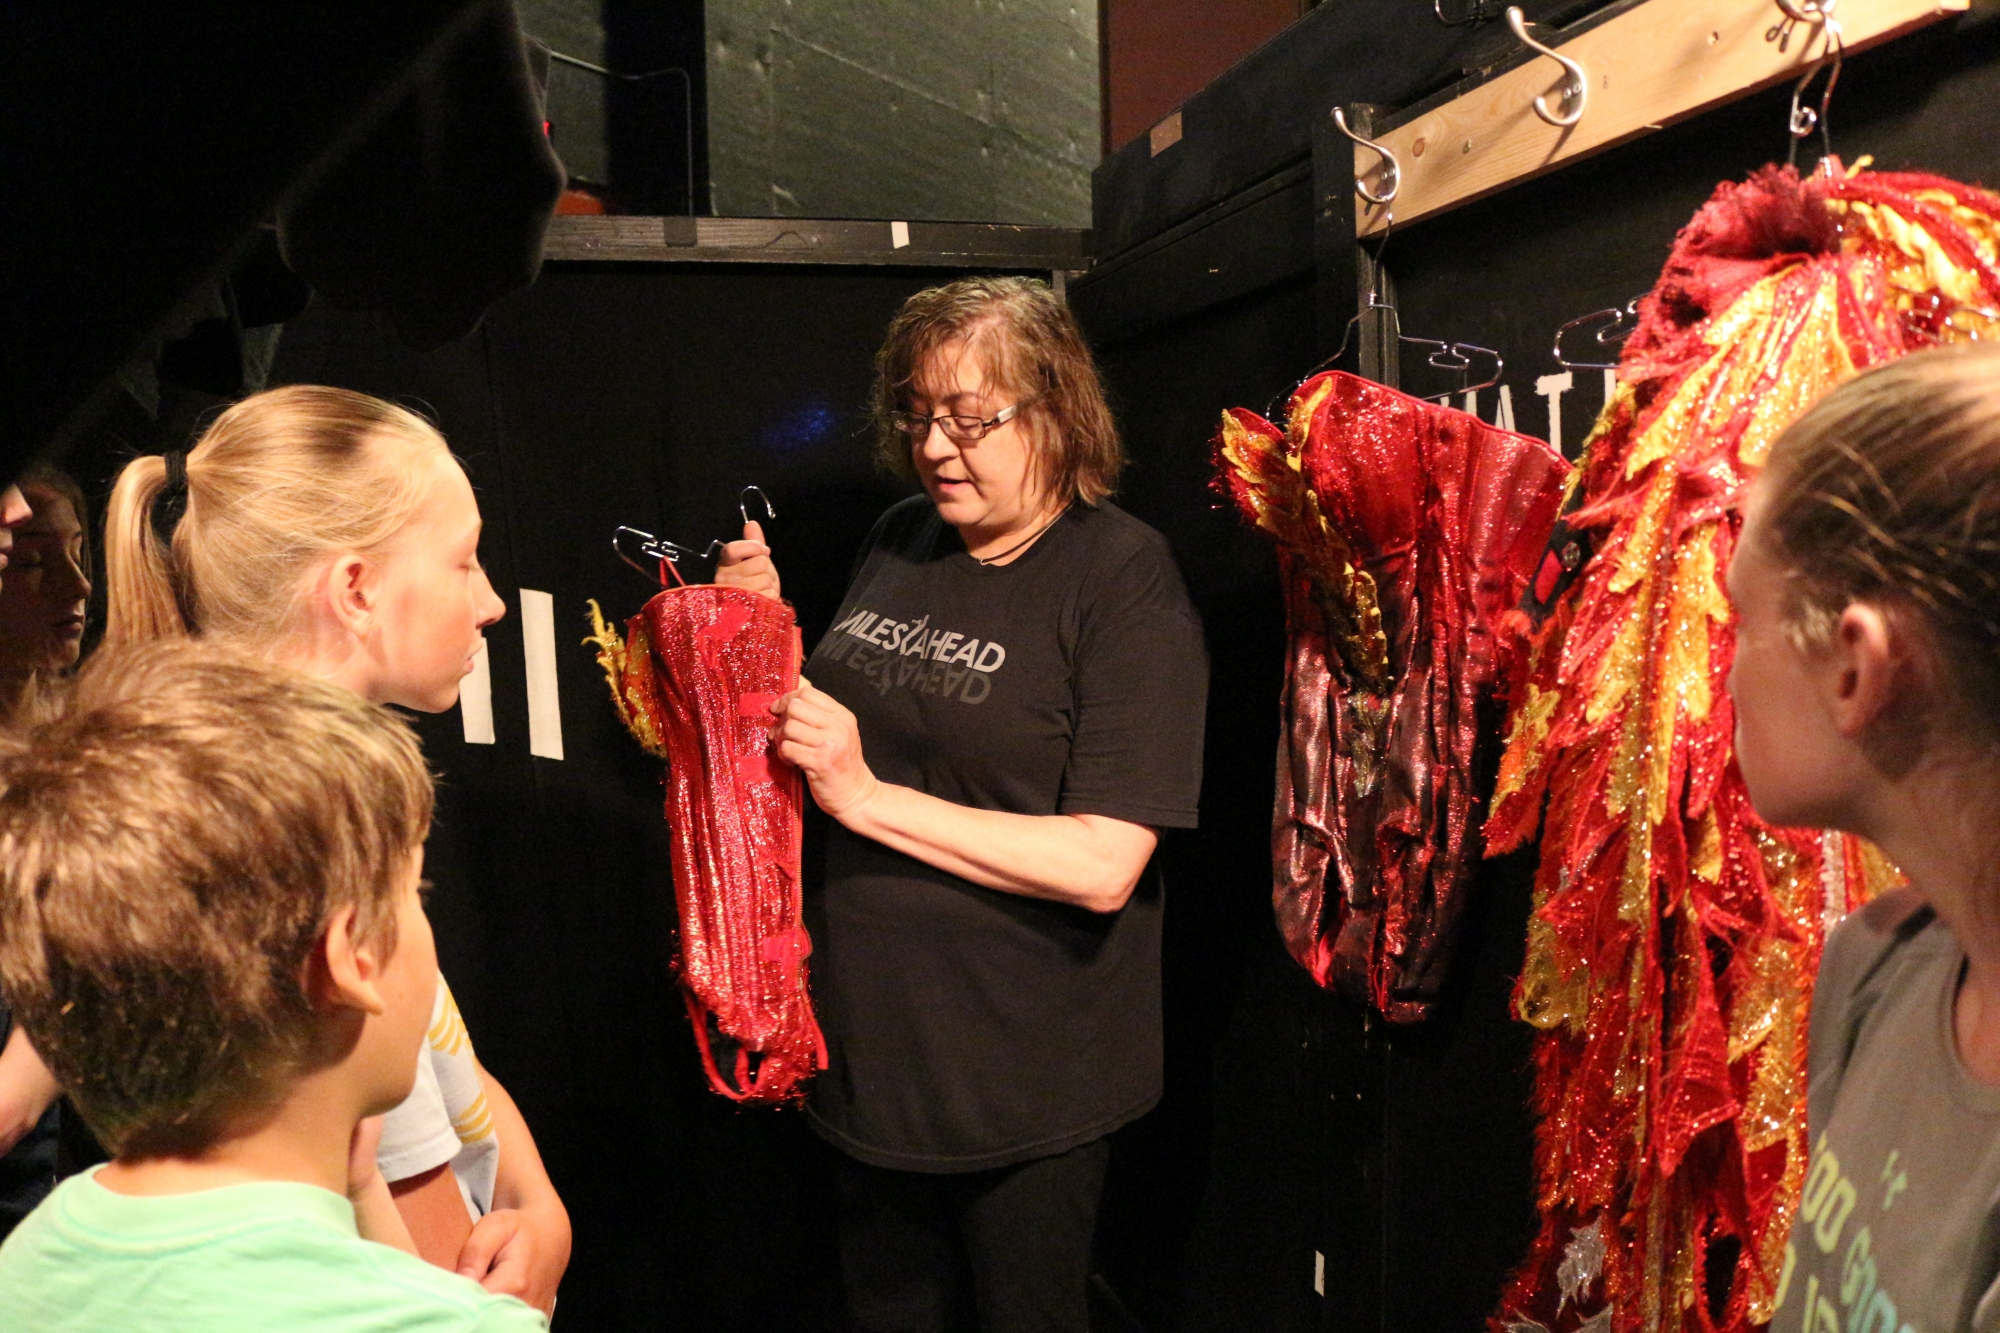 Image of the costume designer showing off red costumes to fashion design students